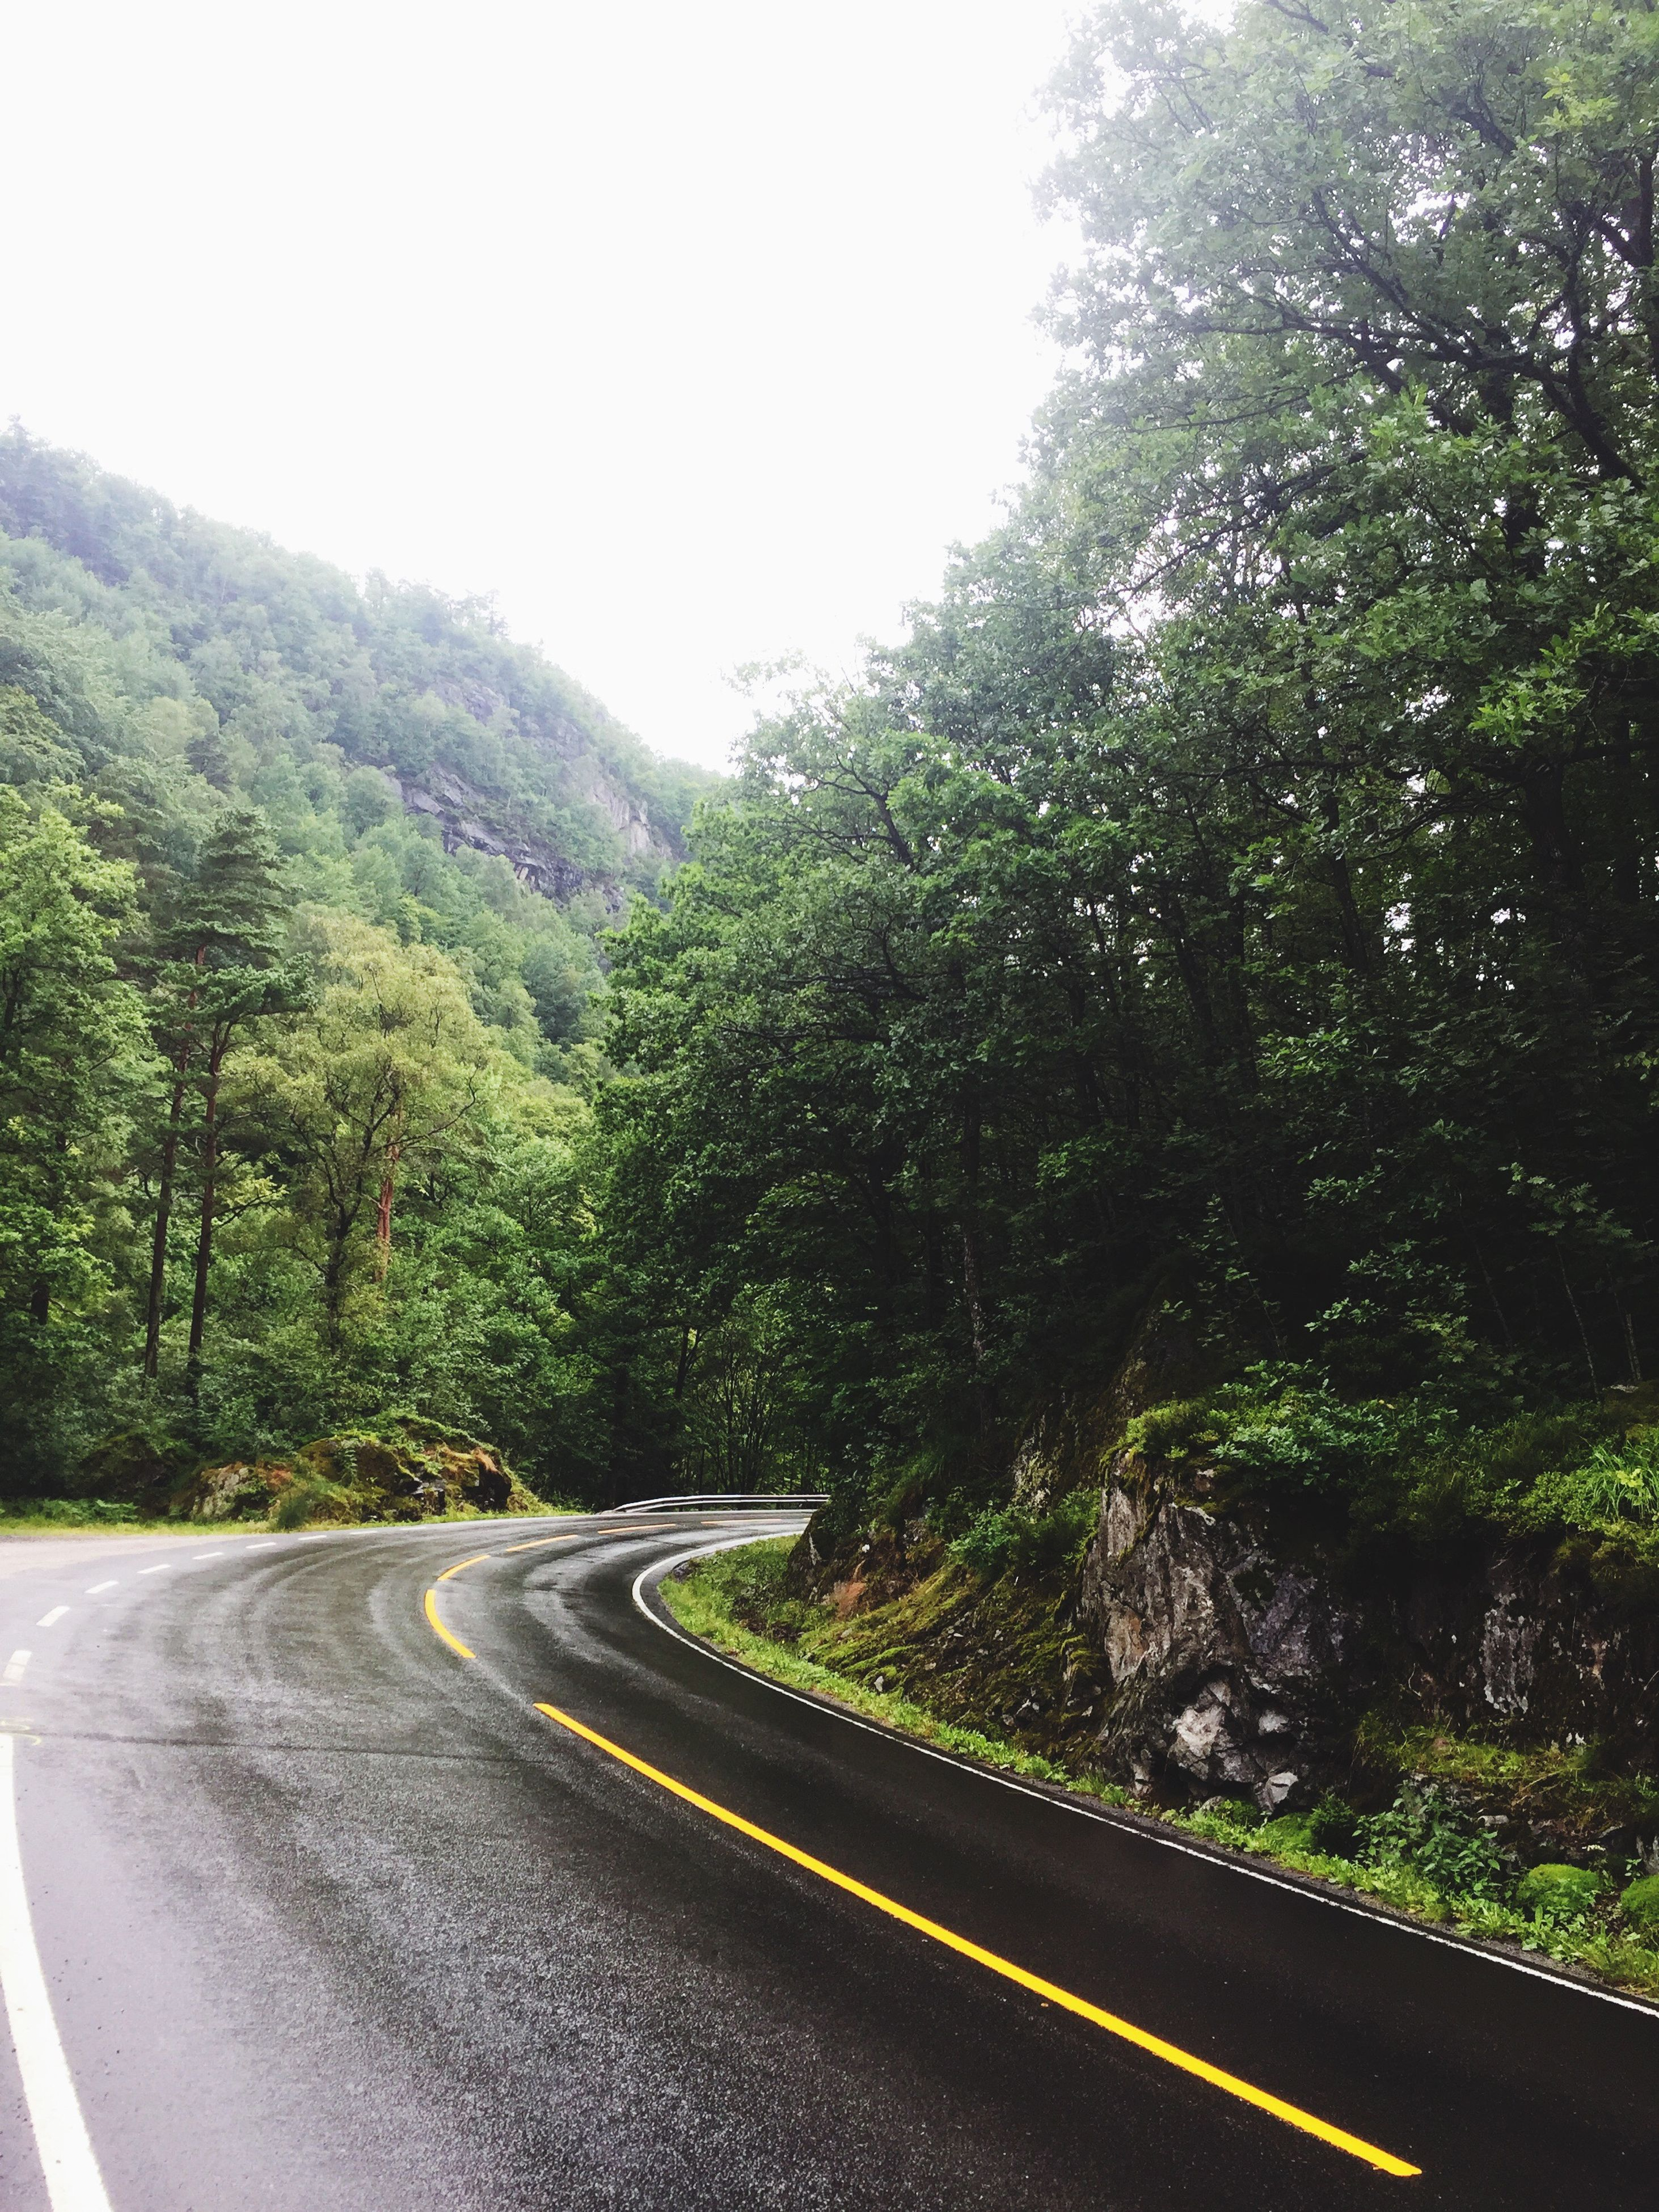 road, tree, transportation, the way forward, nature, no people, day, curve, winding road, mountain, tranquility, outdoors, clear sky, growth, scenics, forest, beauty in nature, landscape, sky